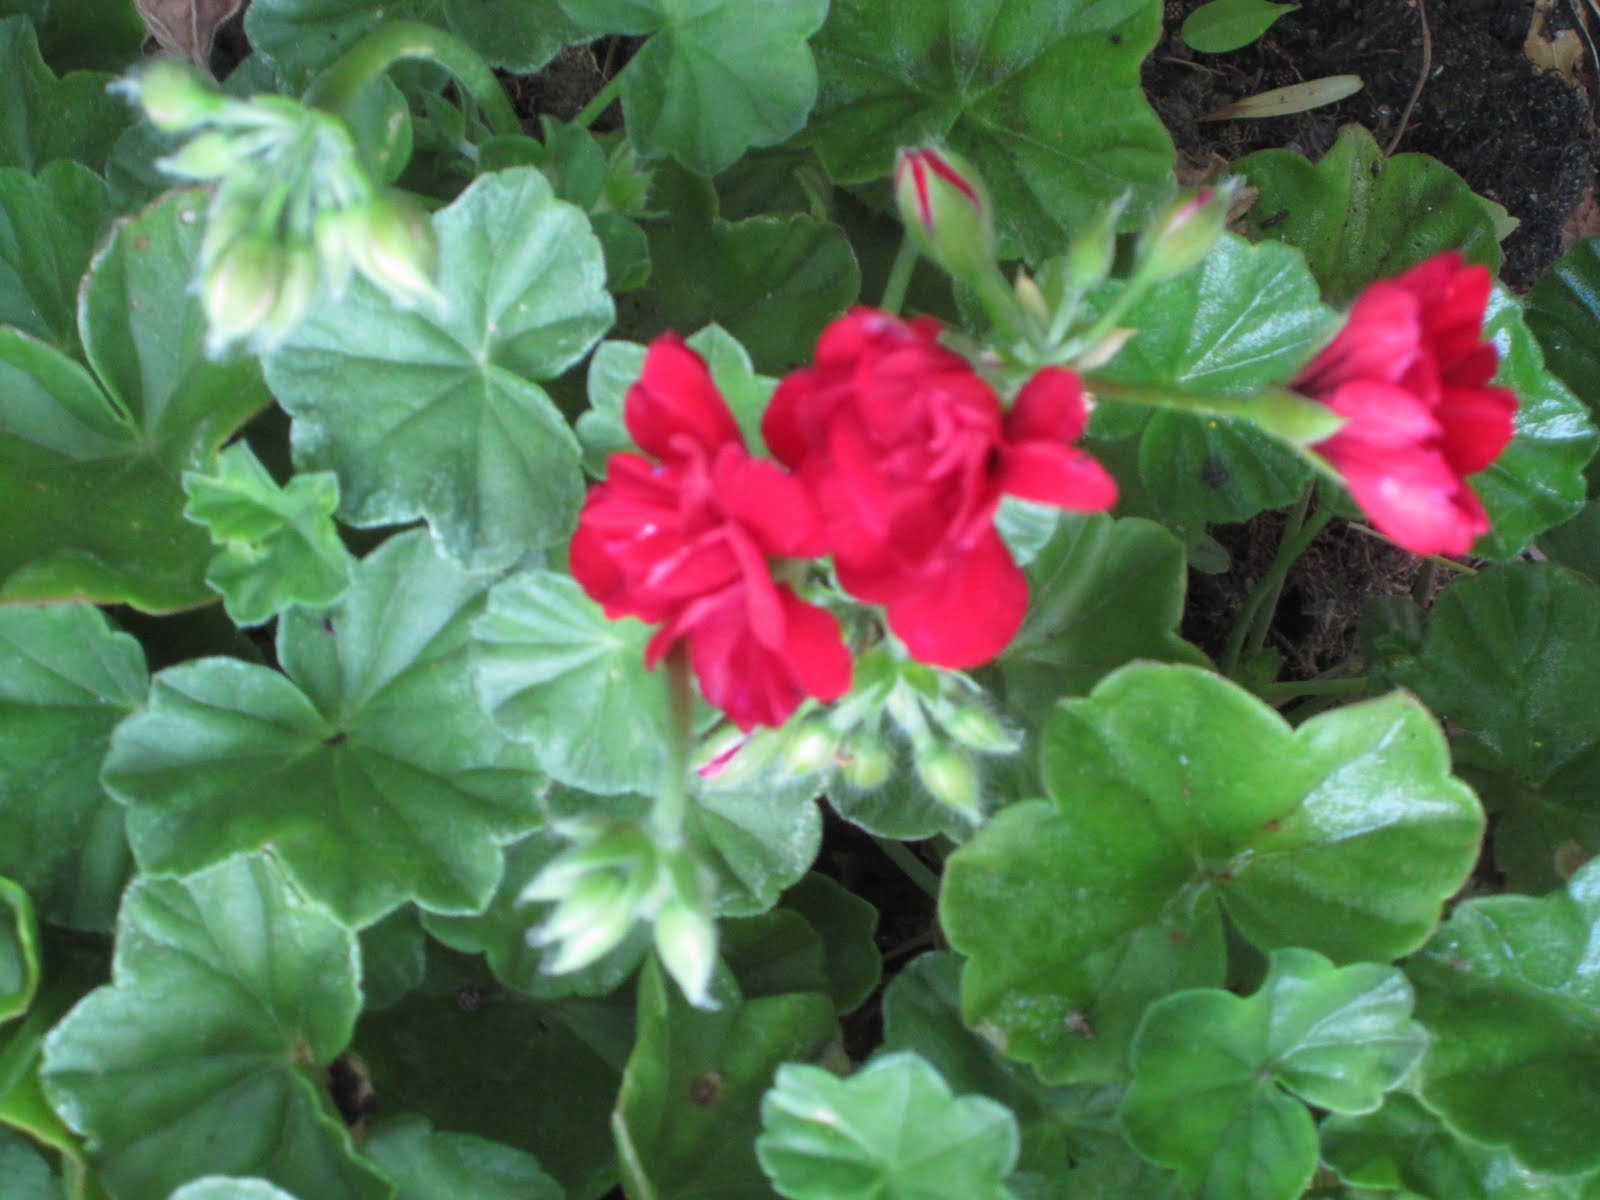 Joe ruggiero designer hgtv host ivy geraniums give great color to the garden - How to care for ivy geranium ...